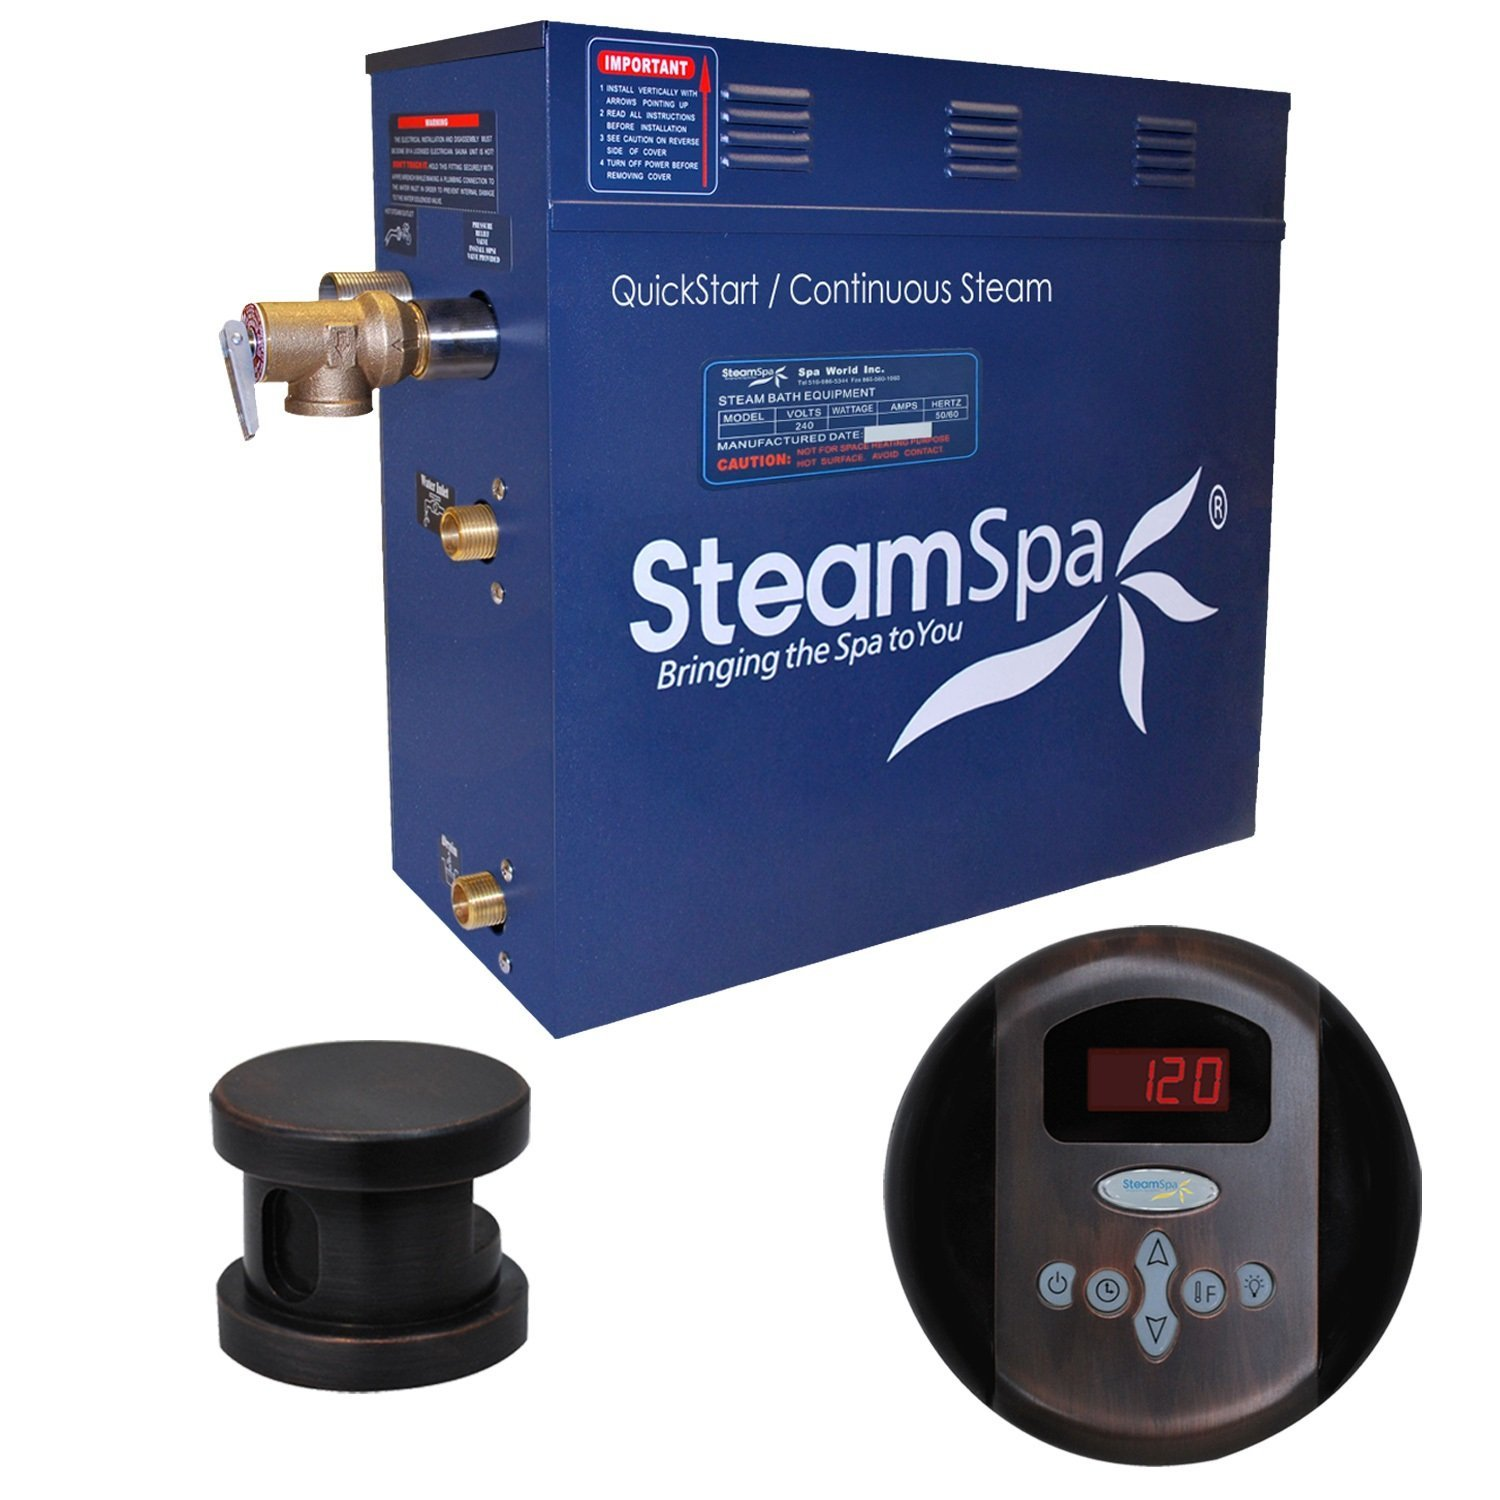 Steam Spa OA450OB Oasis 4.5 KW Quick Start Acu-Steam Bath Generator Package, Oil Rubbed Bronze